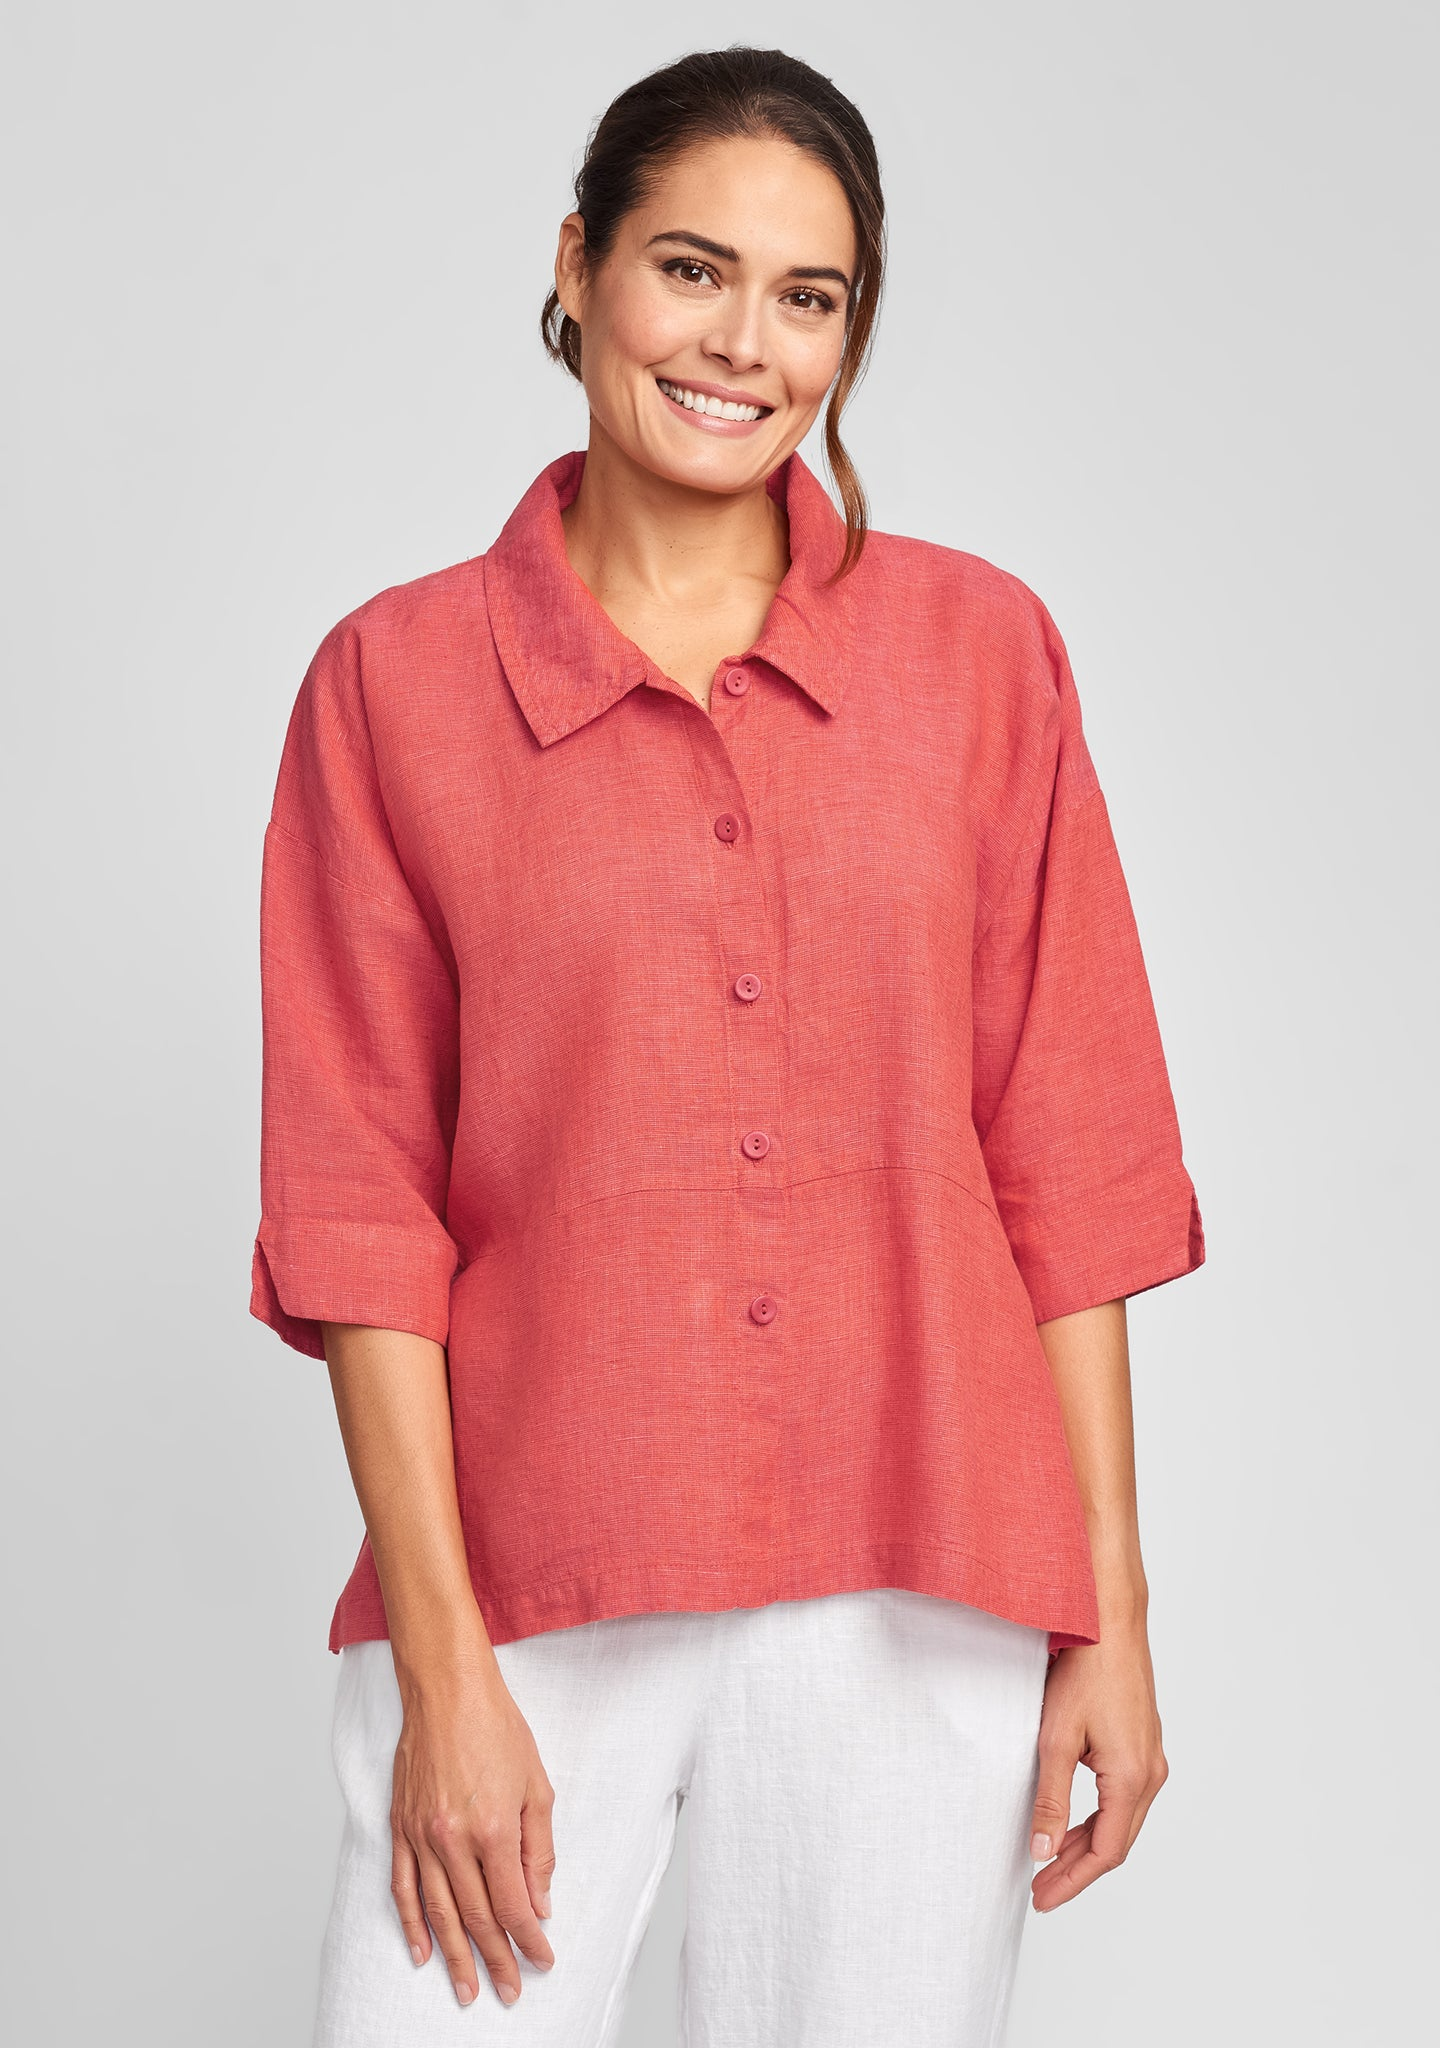 artful blouse linen blouse red